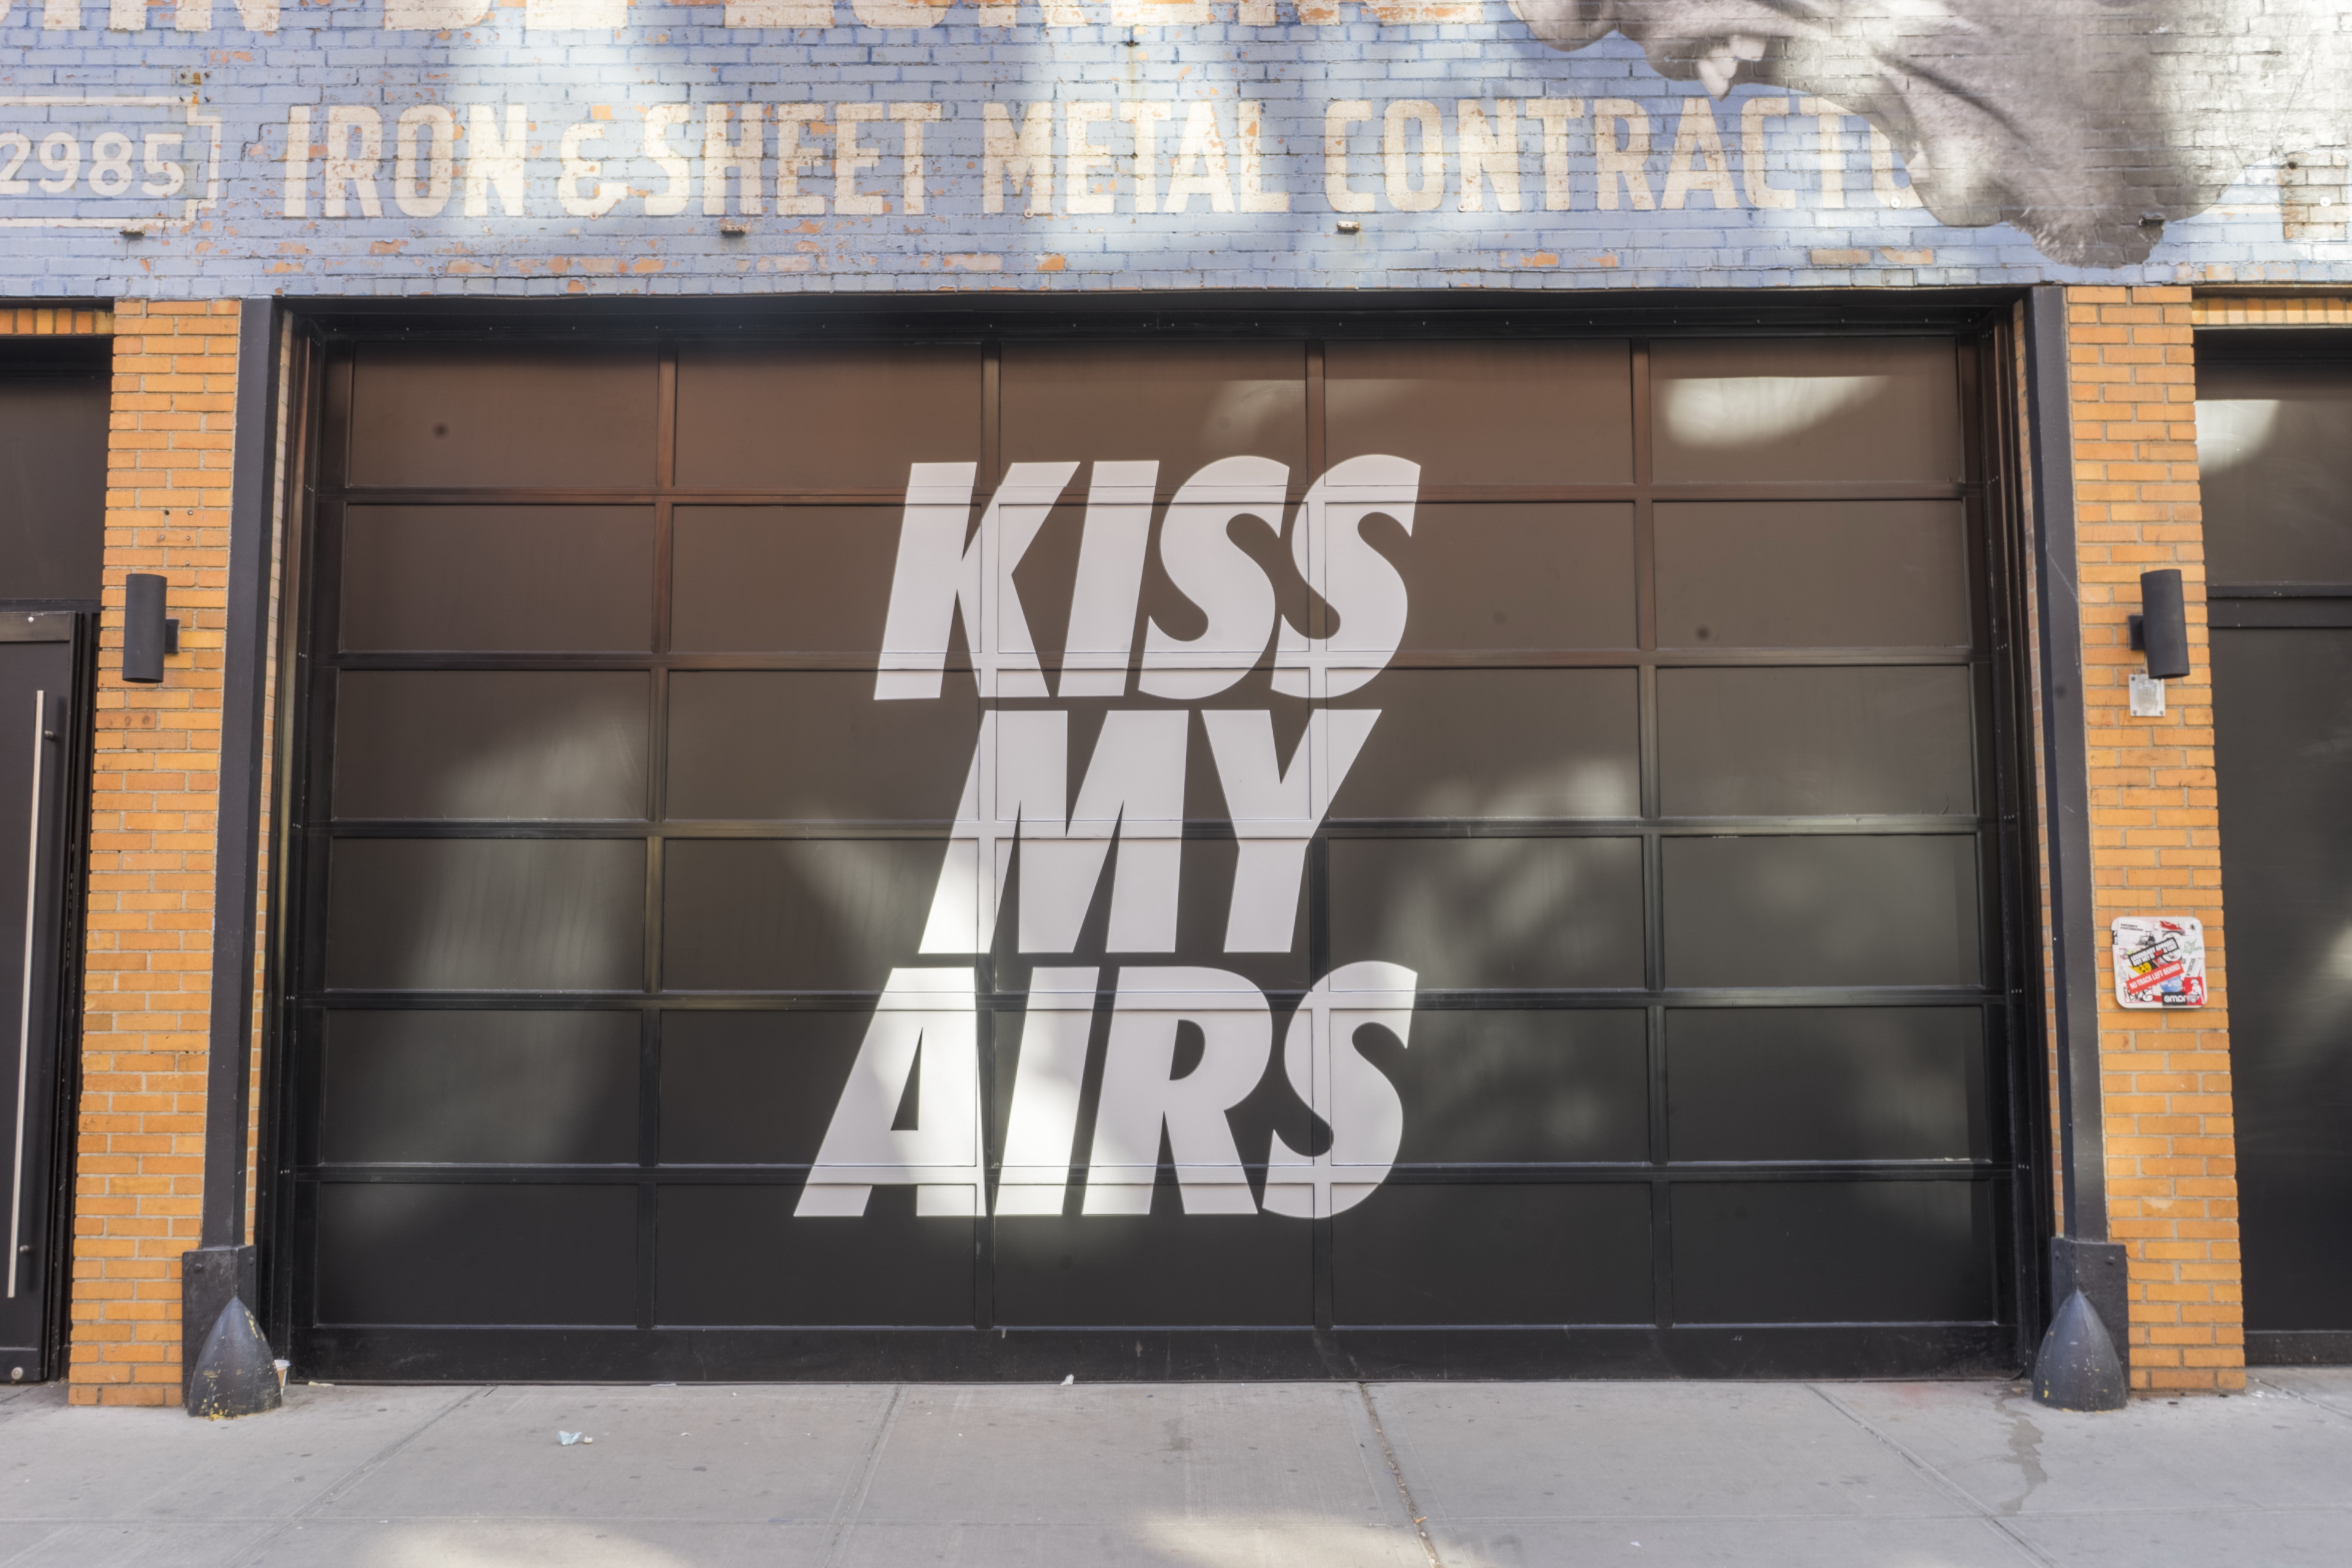 NIKE SNEAKEASY locations will pop-up coast-to-coast in New York City,  Toronto, Chicago and Los Angeles to celebrate Air Max Day (3.26) and  provide a window ...